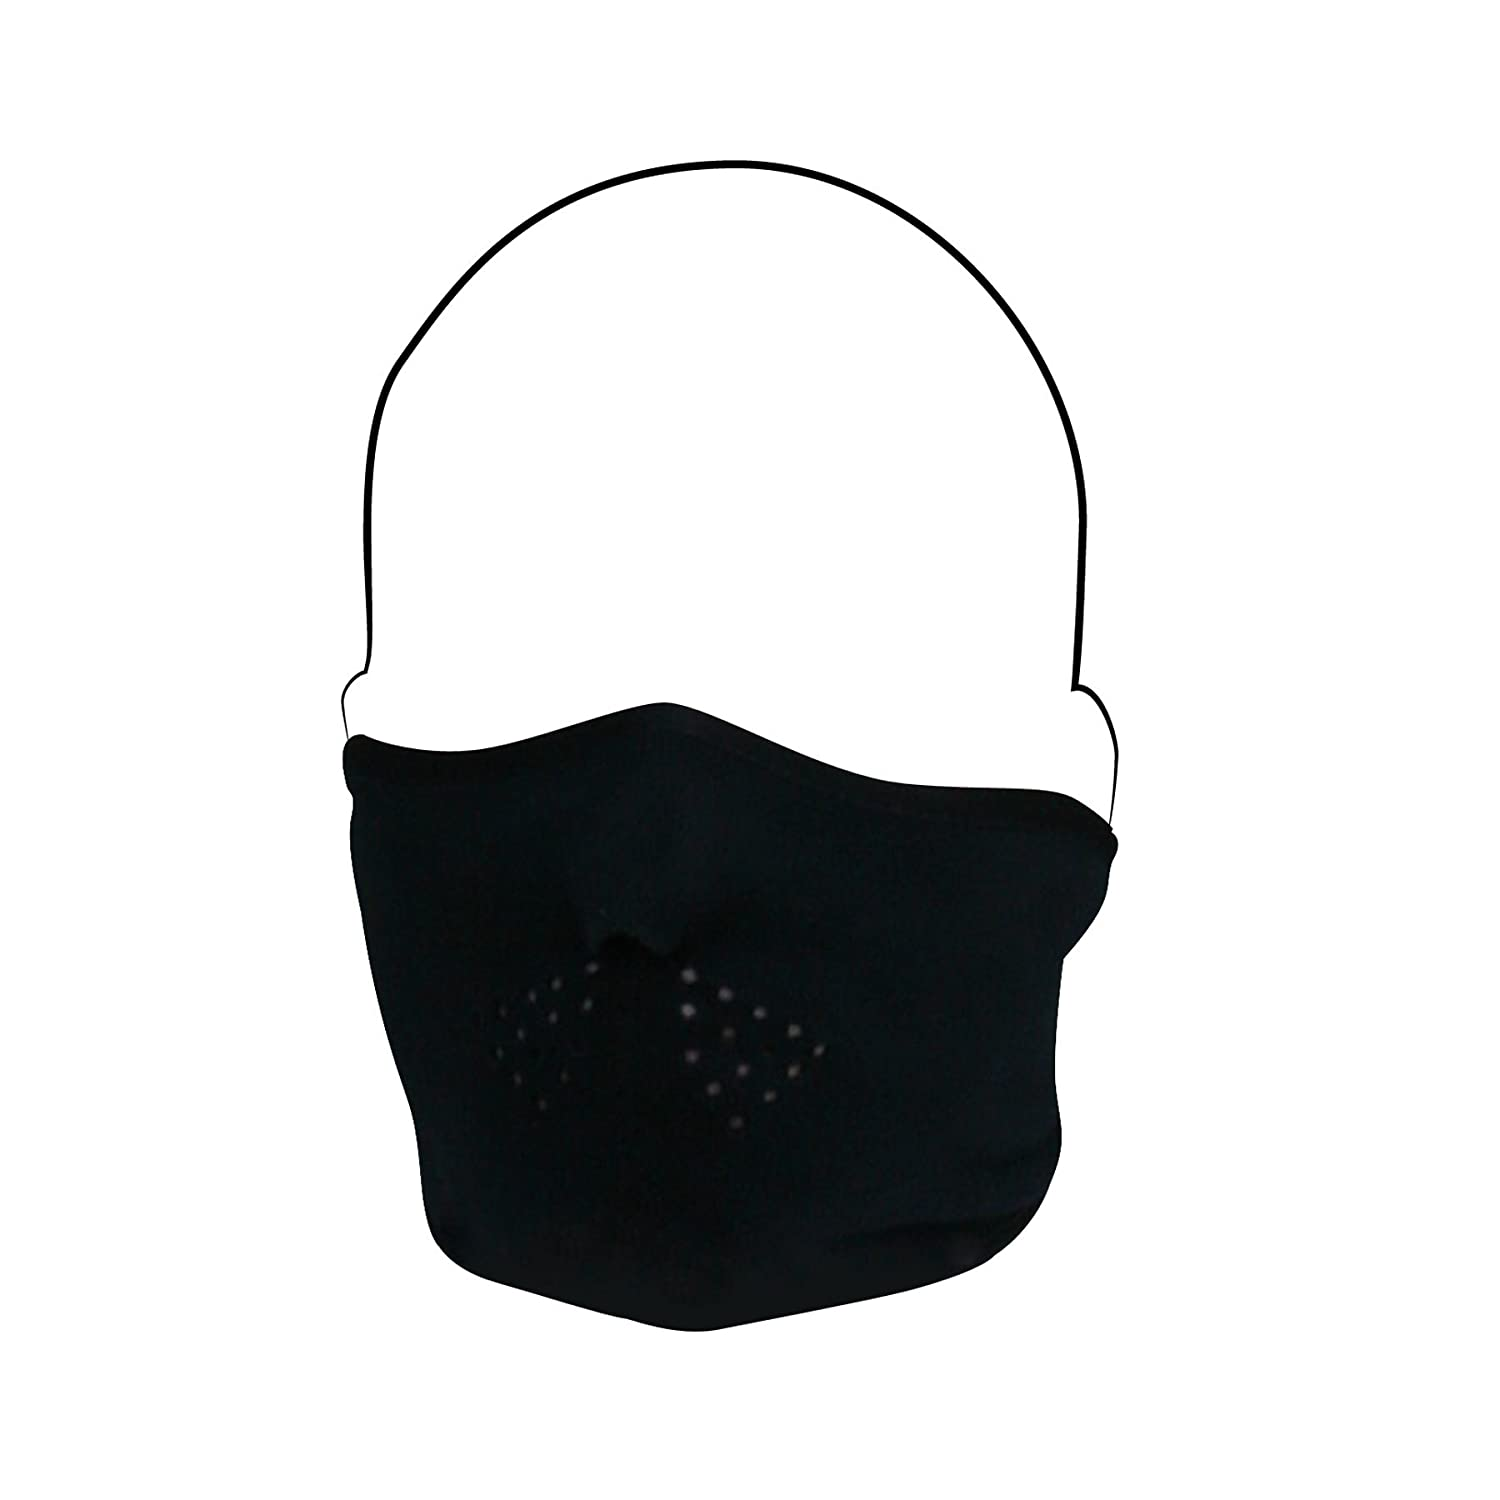 ZANheadgear Microfleece Full Face Mask with Mesh Mouth Black WFMF114